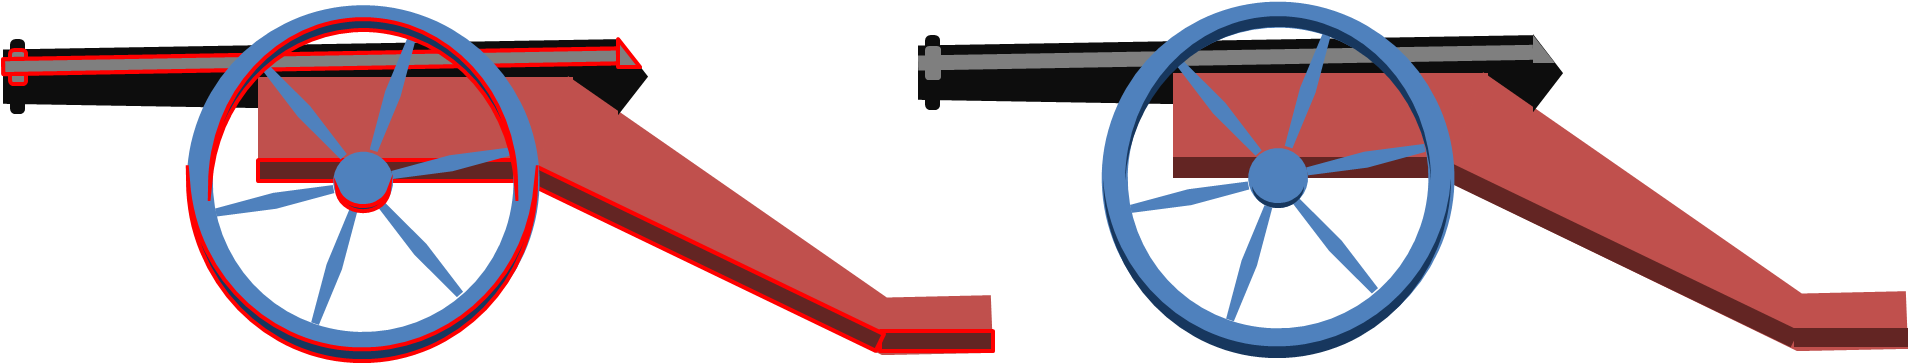 Powerpointy cannon. Clipart thermometer animated